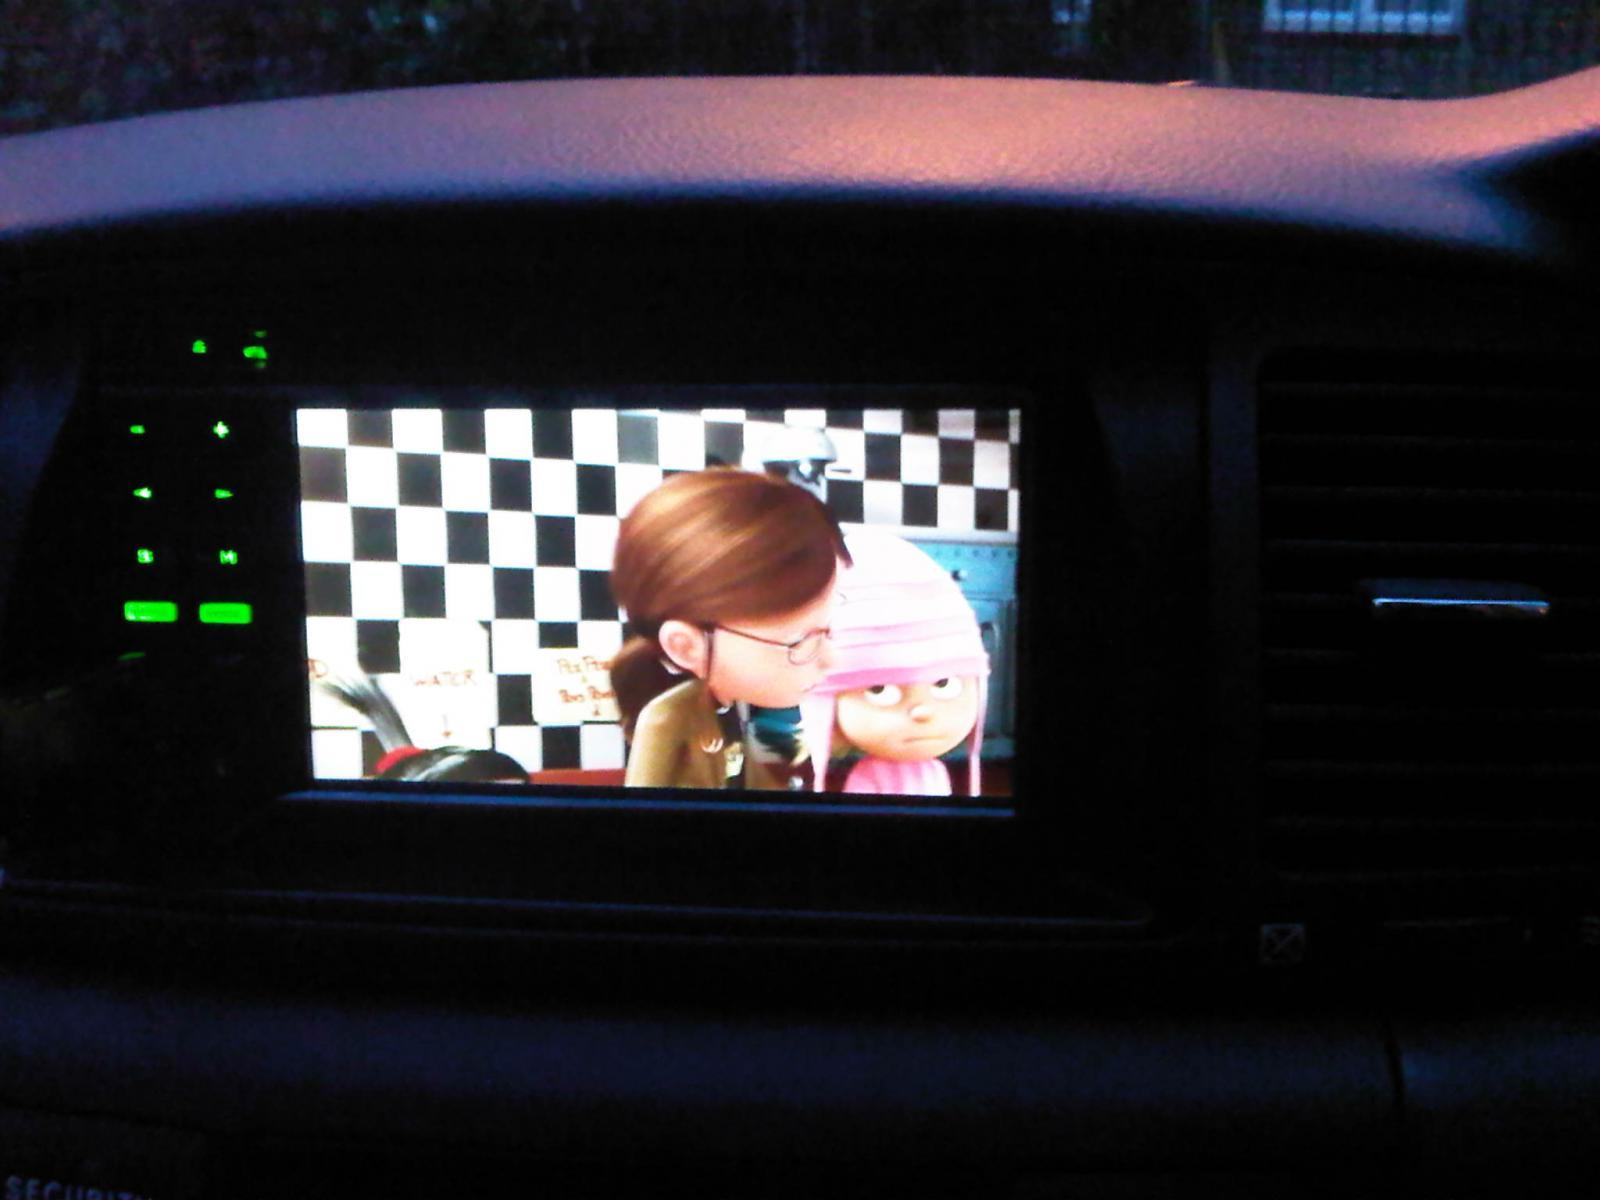 Pioneer HU installed with usb. Playing Despicable Me (No flash)